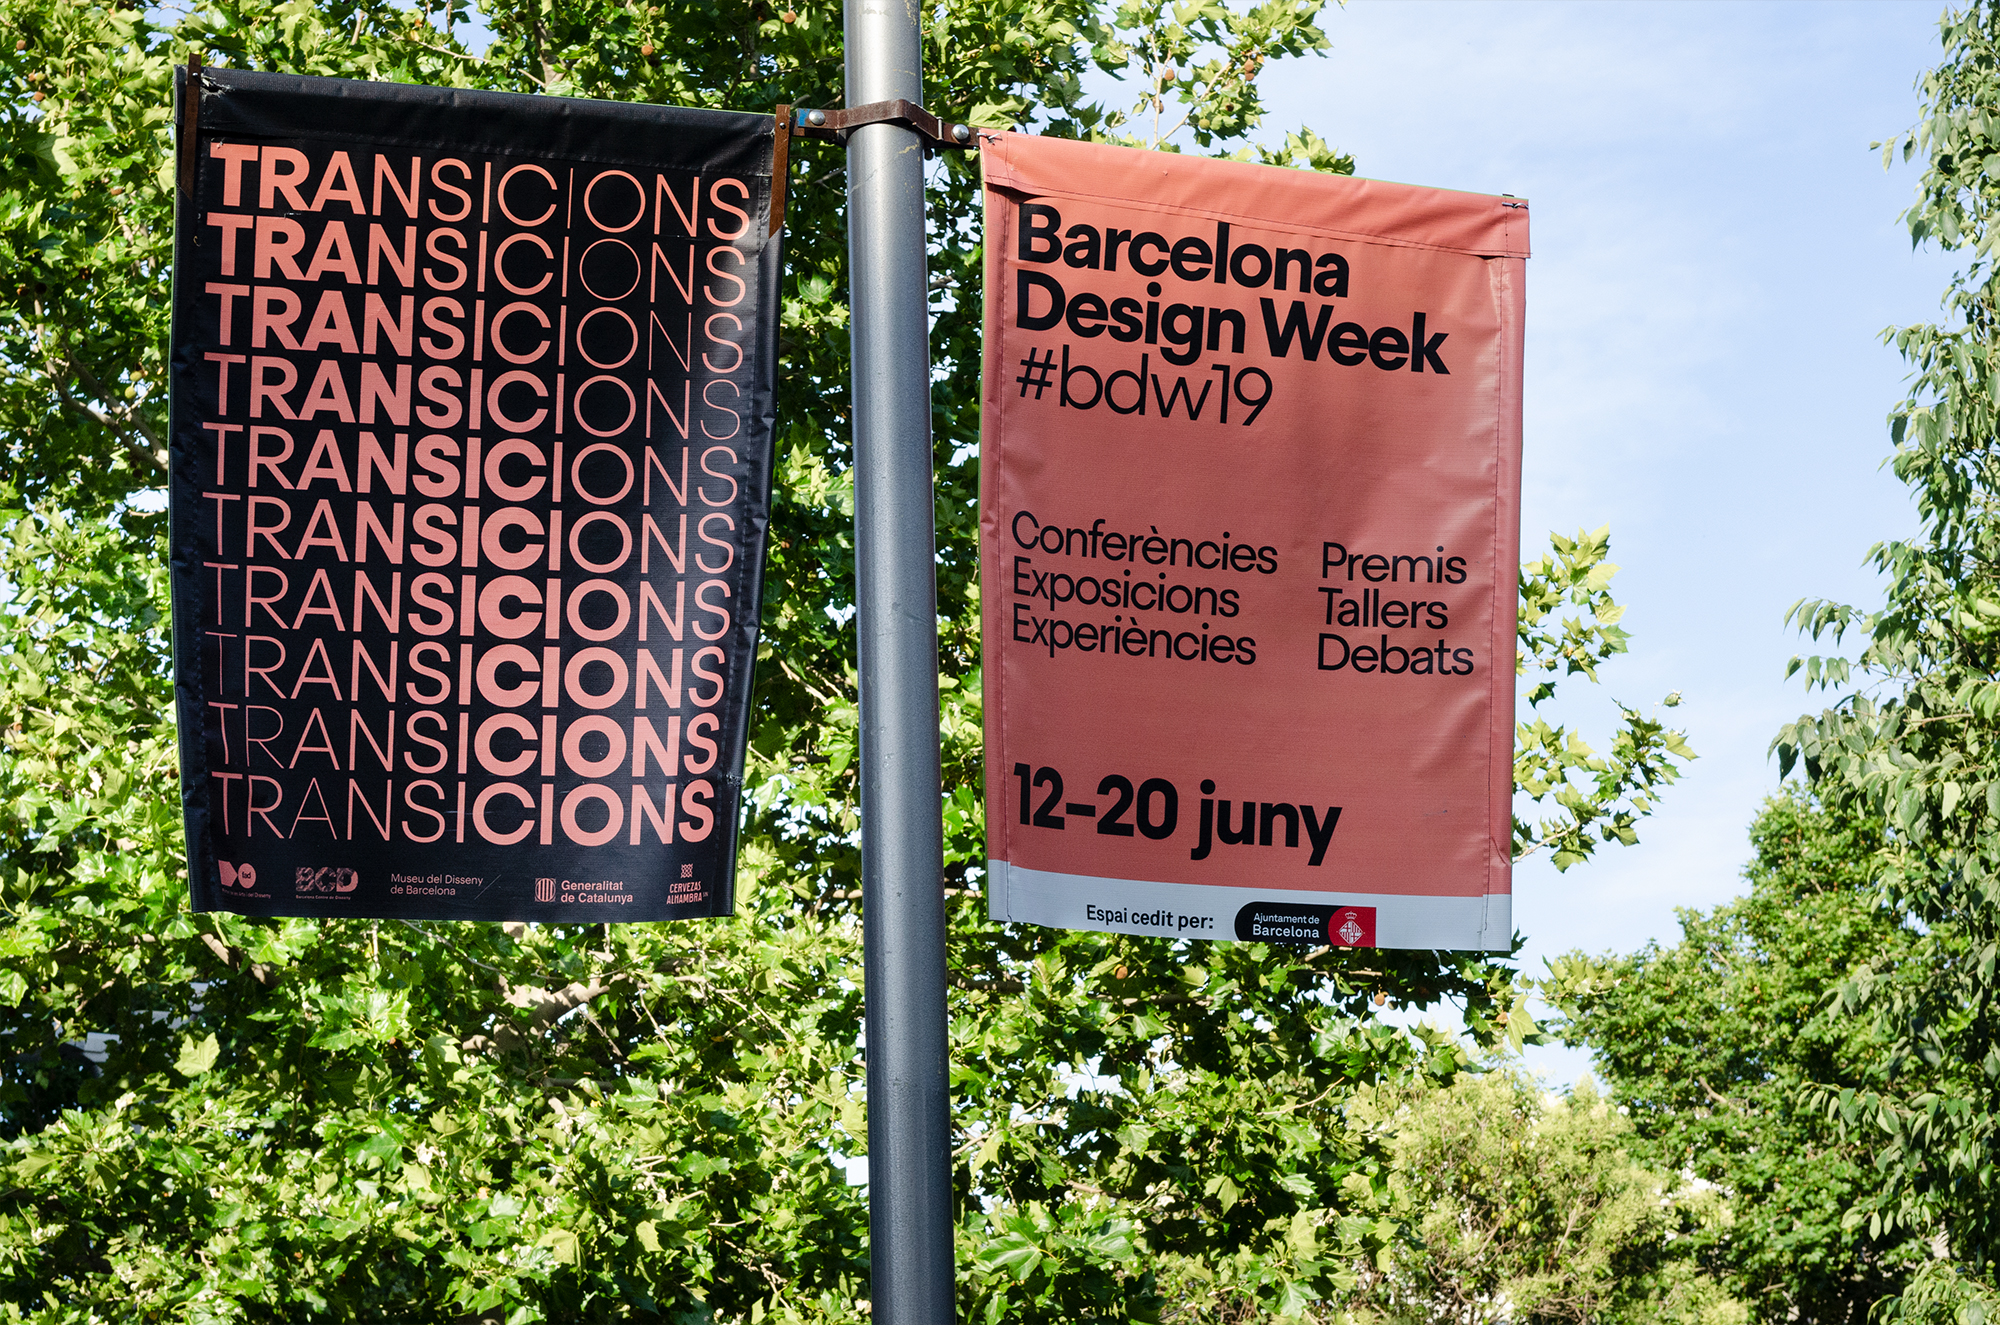 New Identity for Barcelona Design Week 2019 by ESIETE